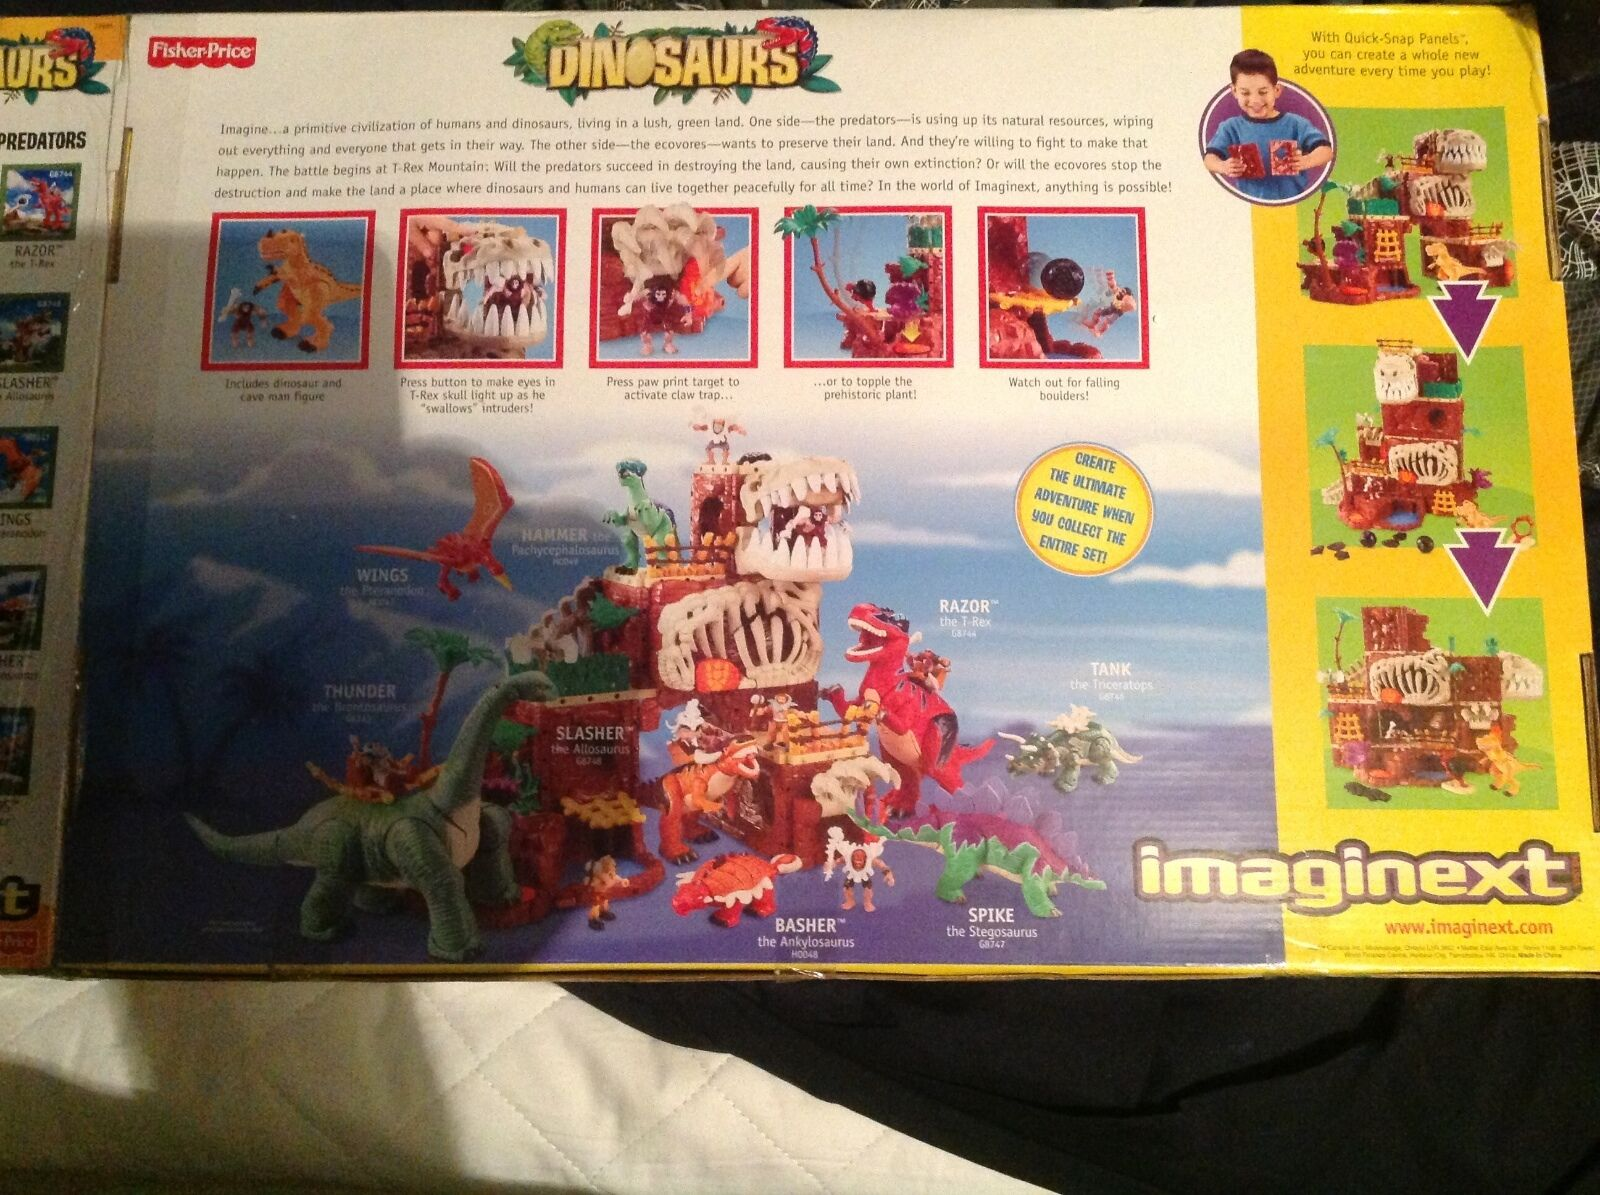 Large imaginext t-rex mountain plus plus plus extras very old rare new sealed in box 4aa75f